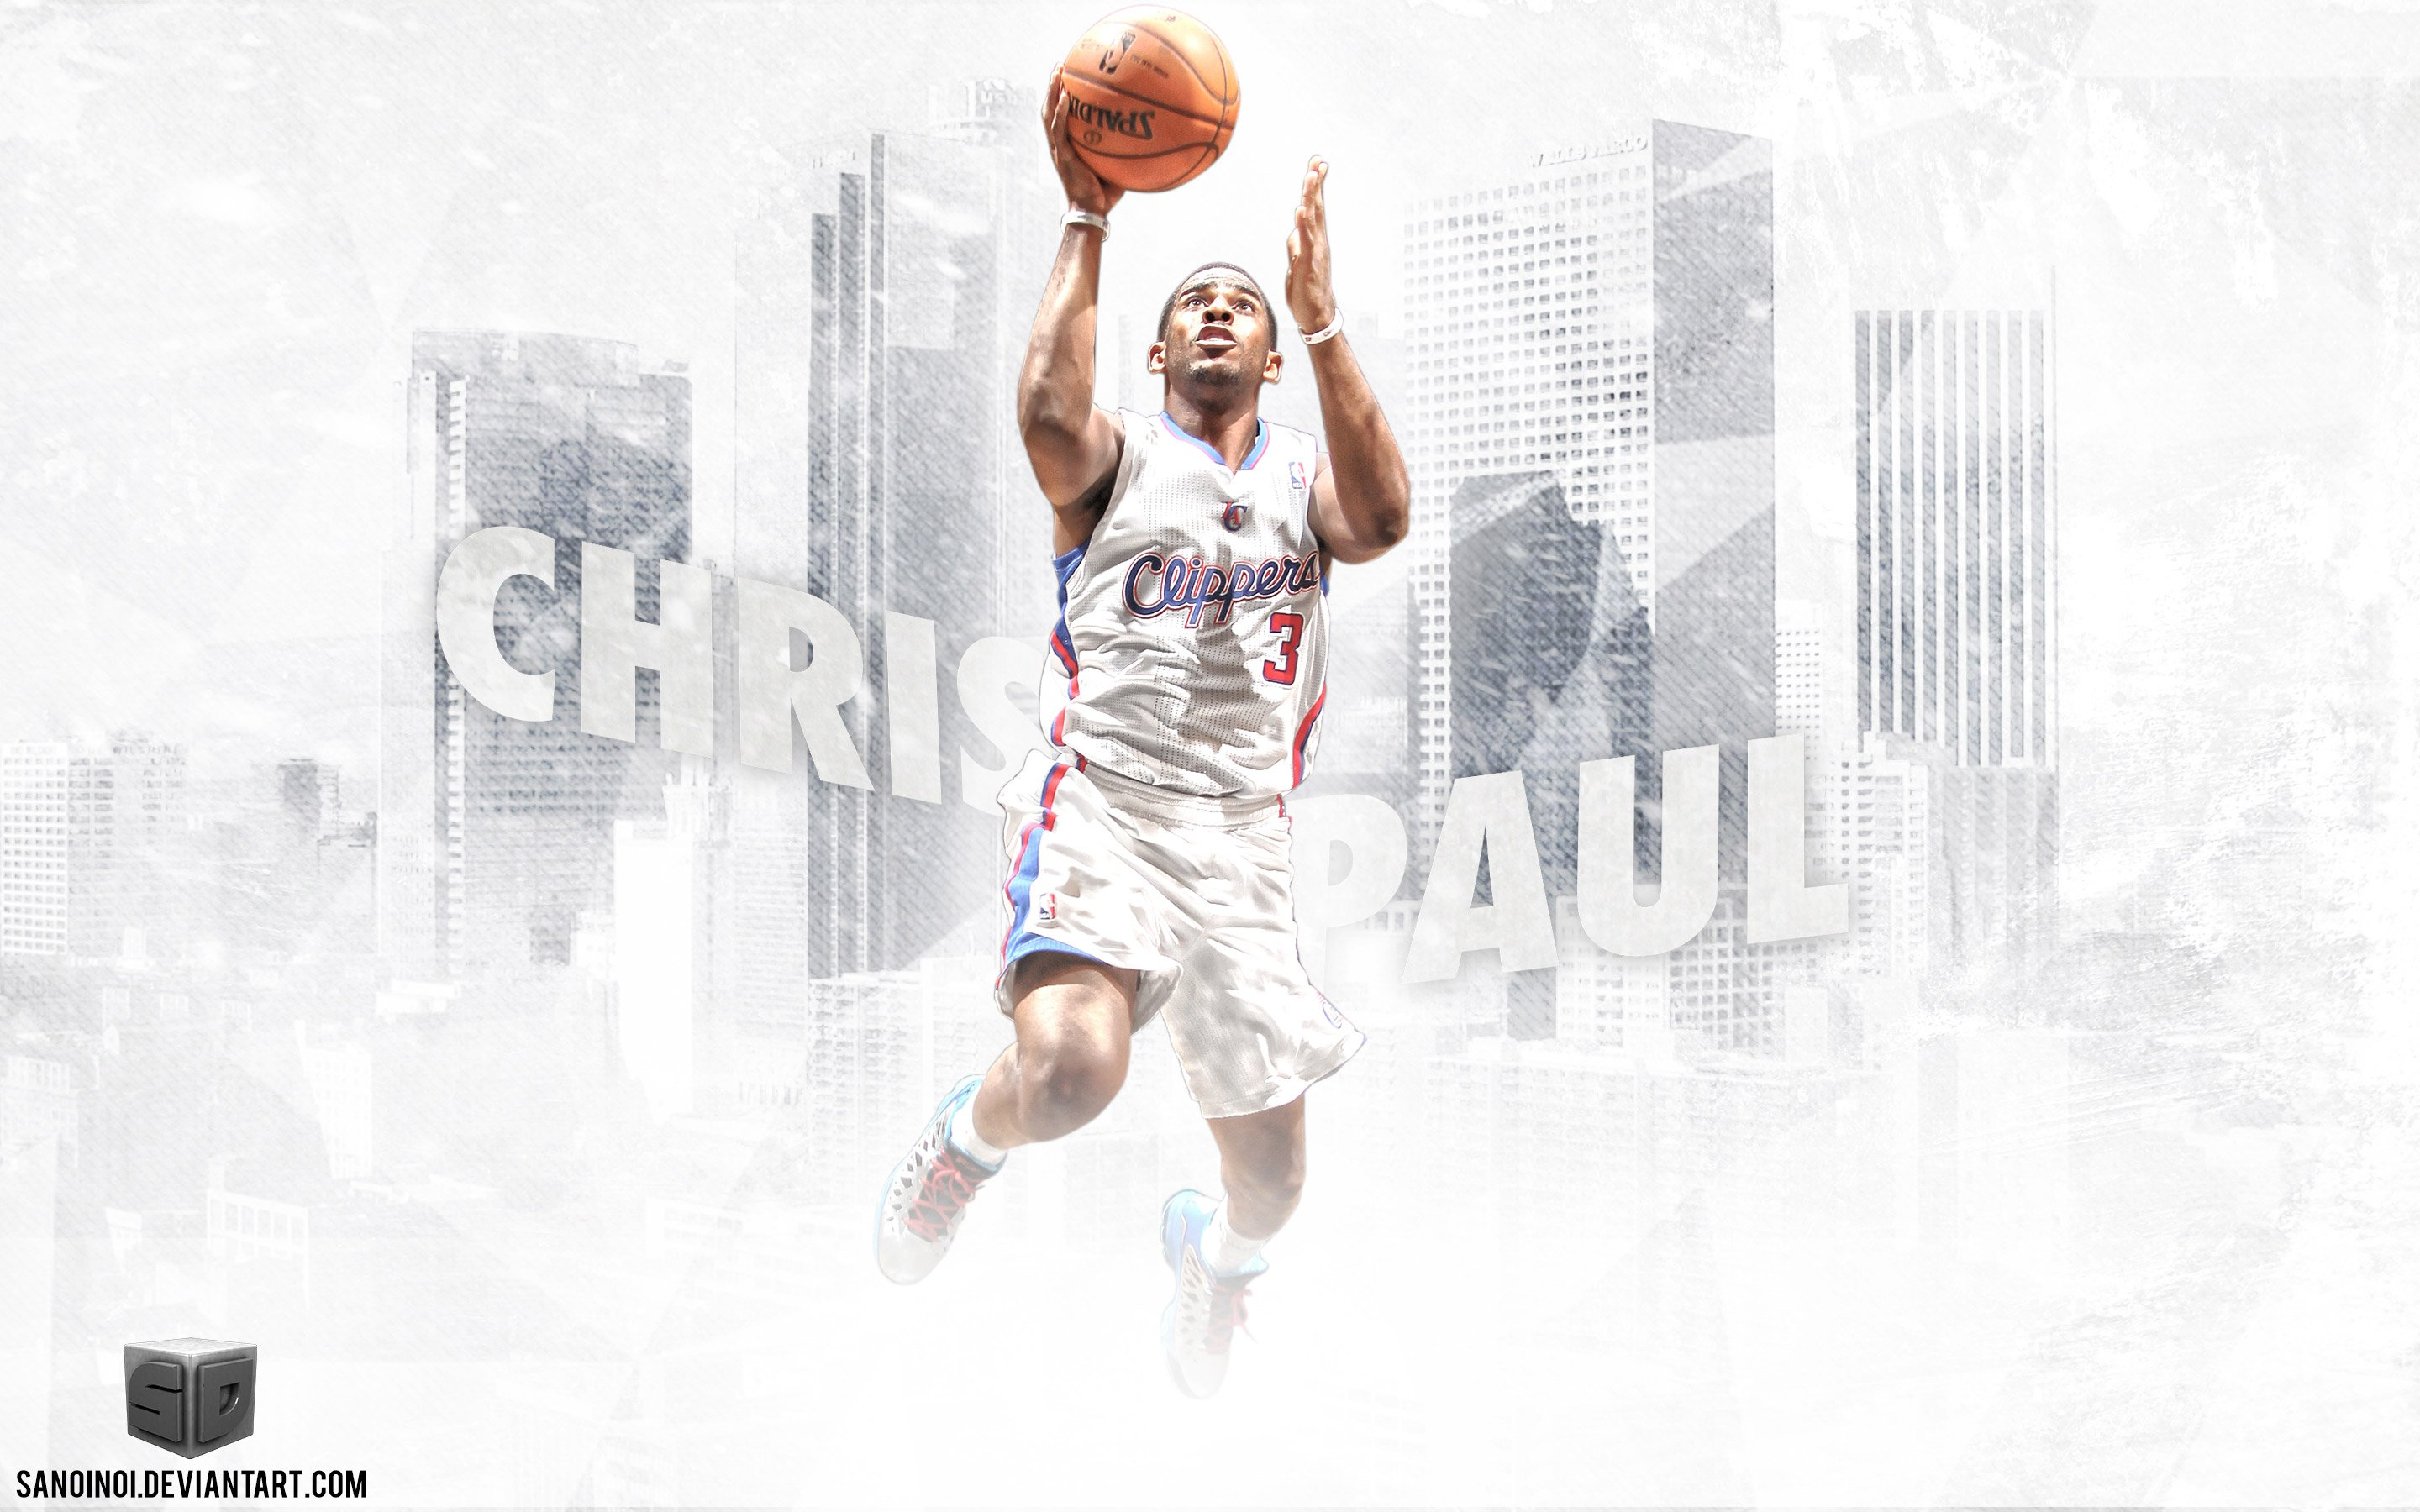 chris paul wallpaper 2014 wallpapersafari